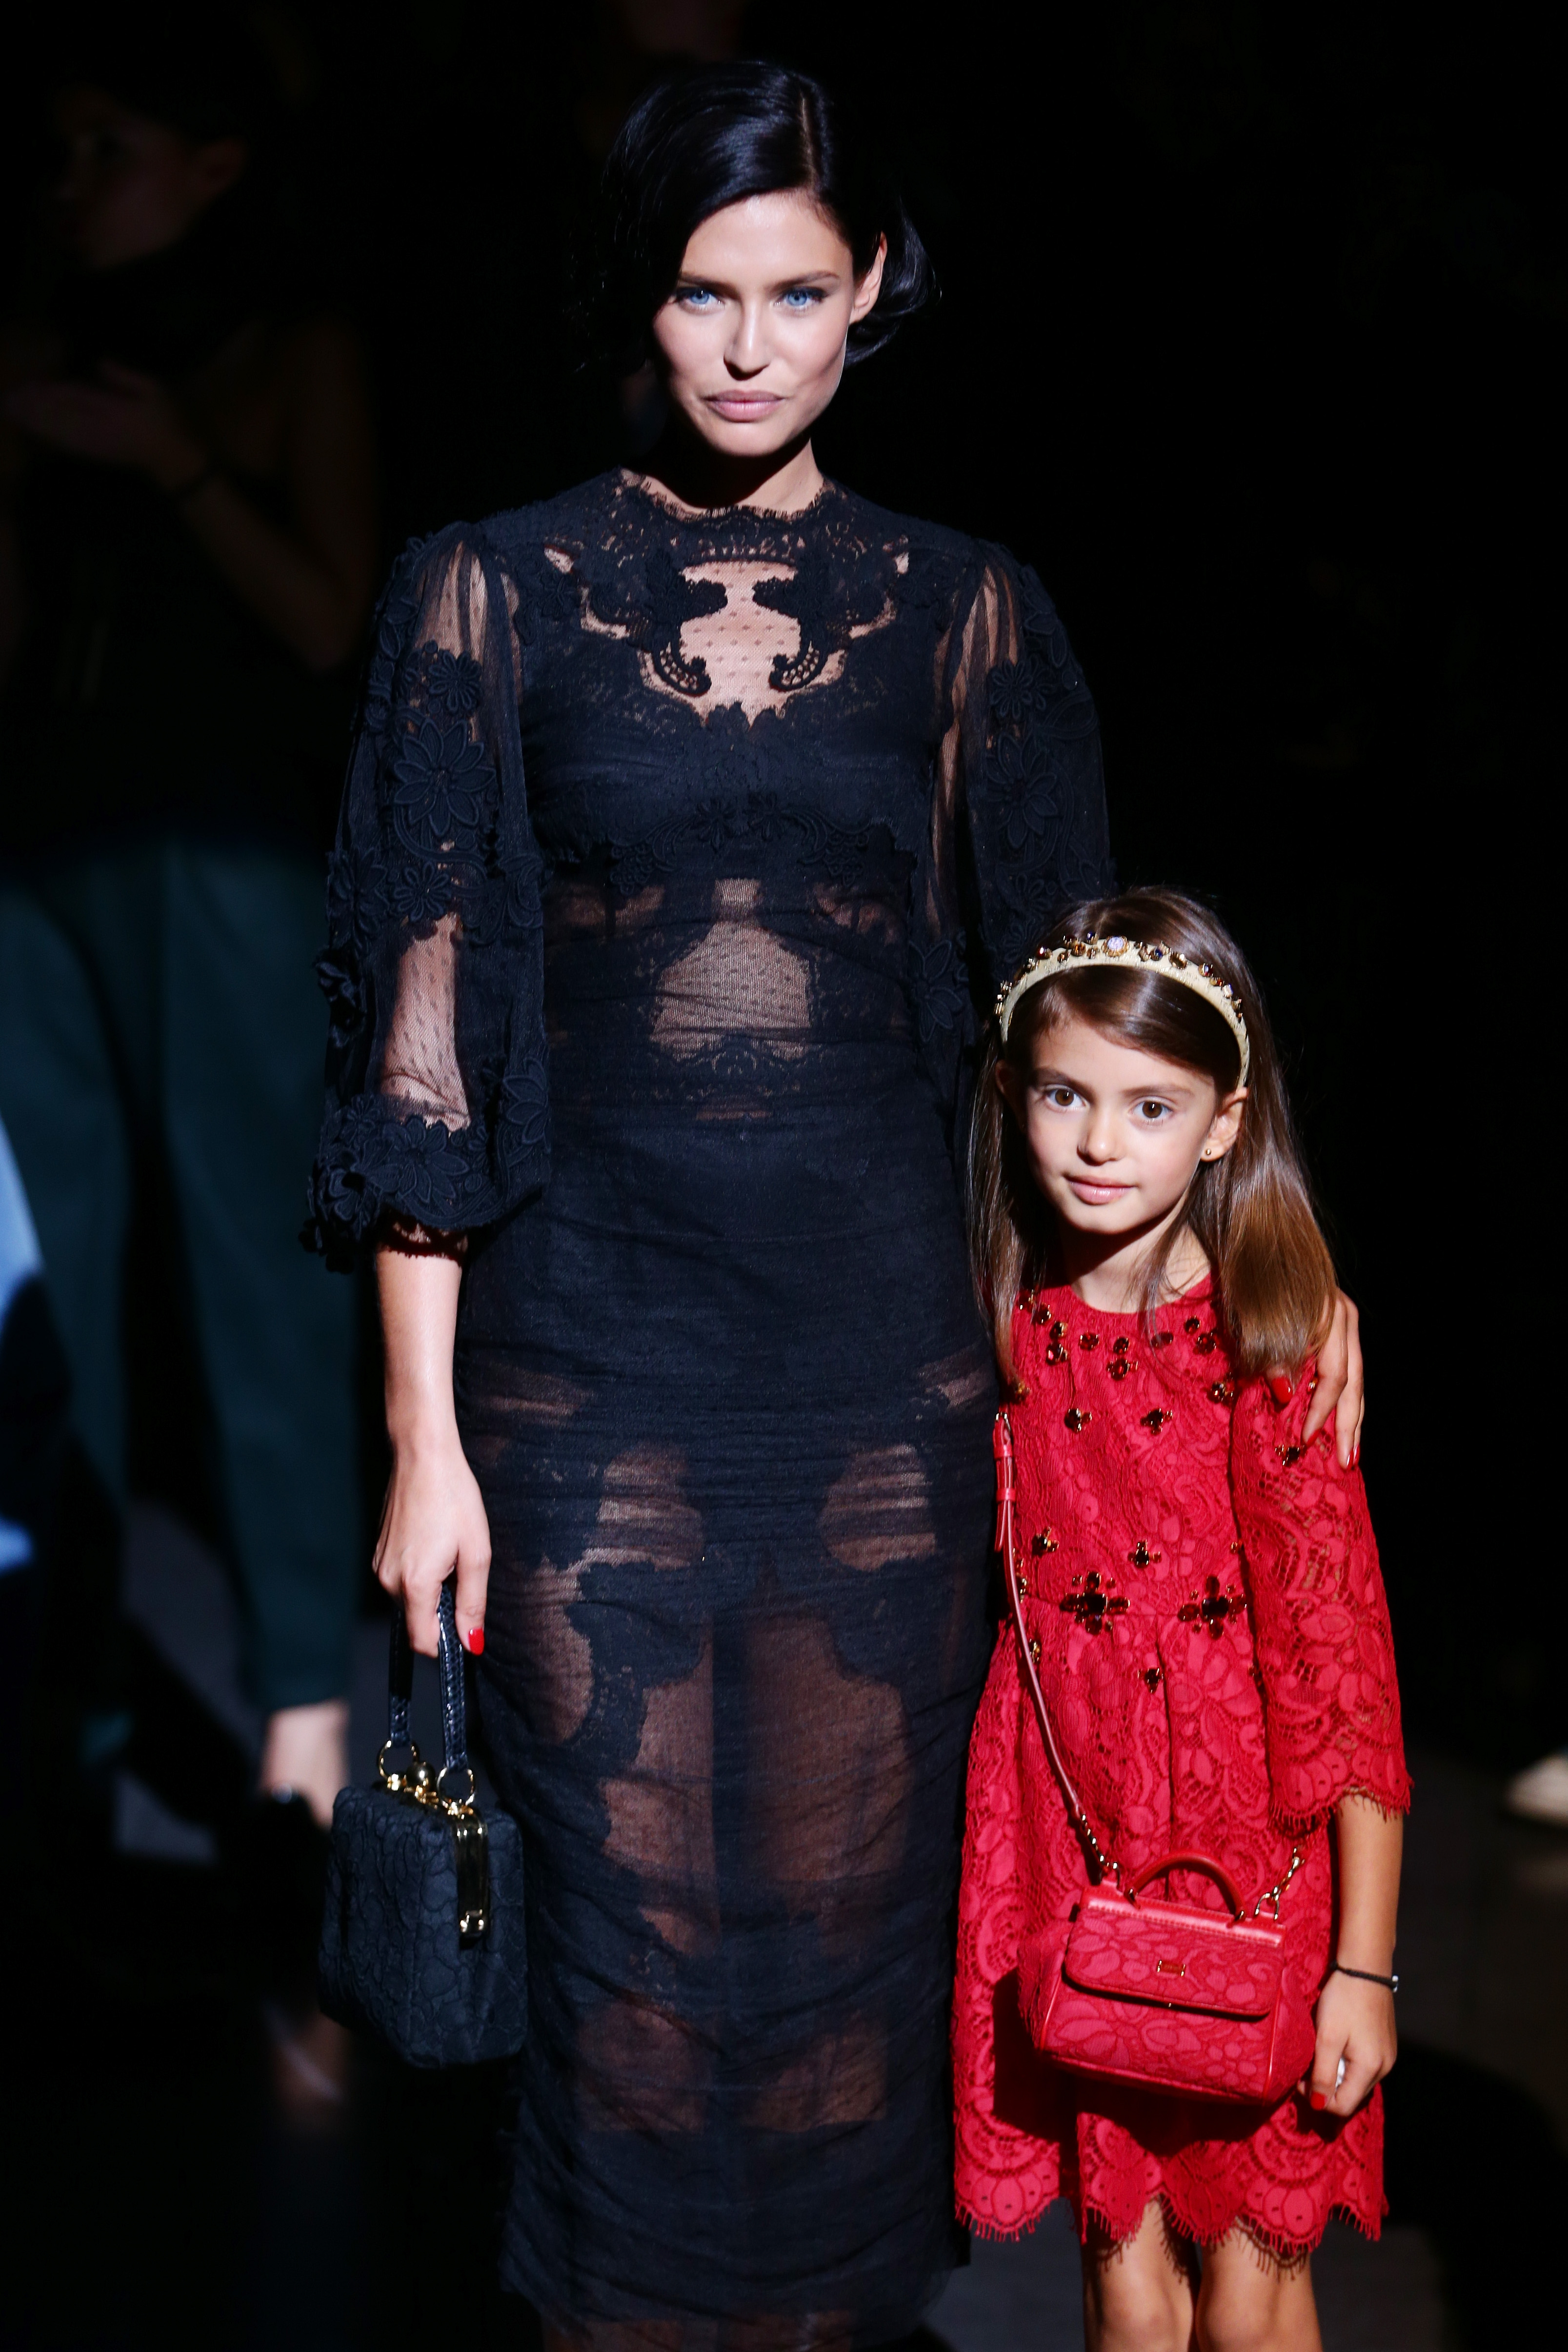 MILAN, ITALY - SEPTEMBER 22:  Bianca Balti and her daughter Matilde attend the Dolce & Gabbana show as part of Milan Fashion Week Womenswear Spring/Summer 2014 at  on September 22, 2013 in Milan, Italy.  (Photo by Vittorio Zunino Celotto/Getty Images)